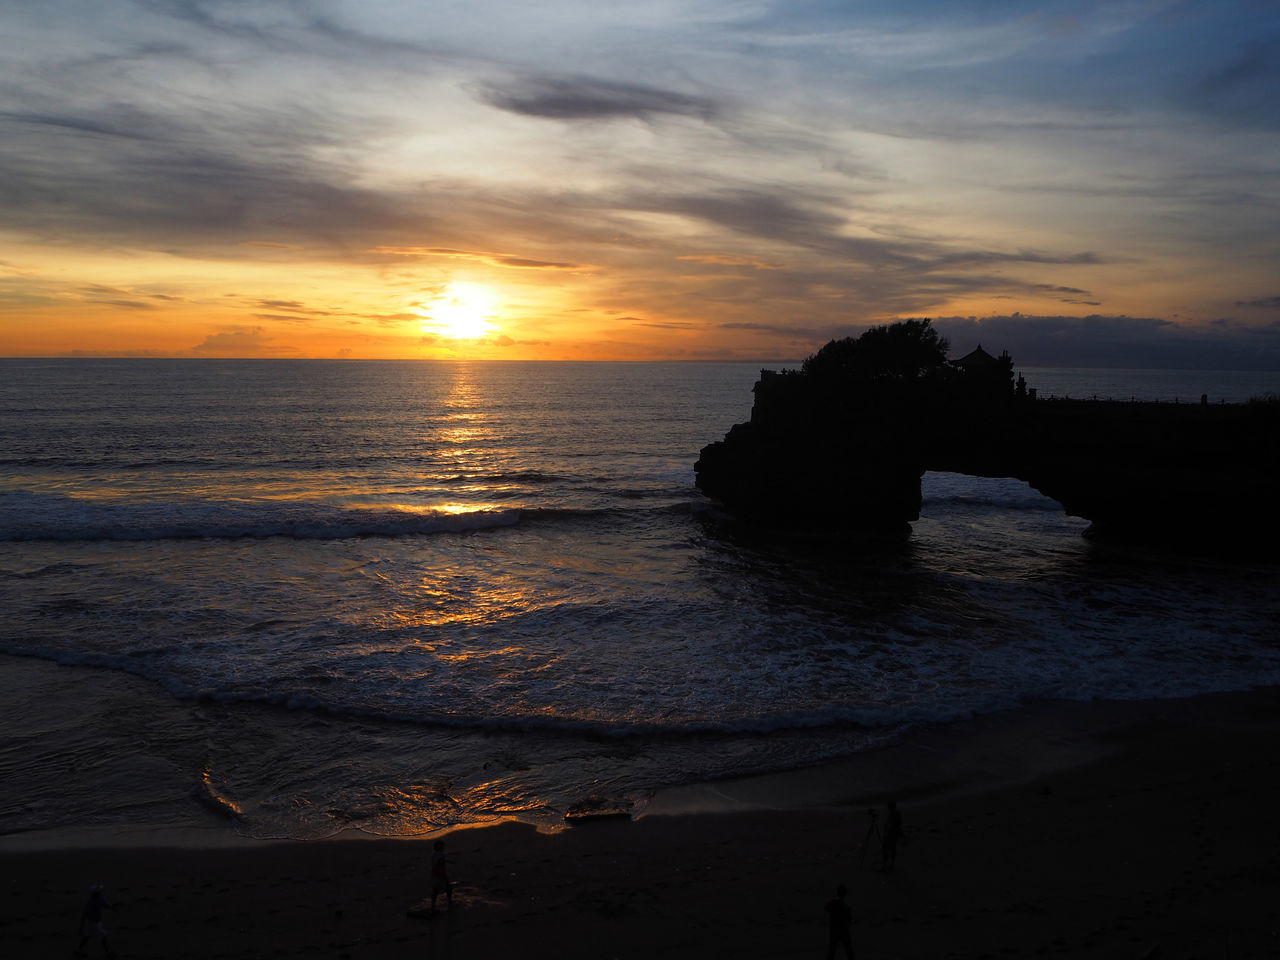 💛Love my sunset💛 Travel Tanah Lot Wave Bali Bali, Indonesia Life Is A Beach Beach Beauty In Nature Cloud - Sky Dramatic Sky Exceptional Photographs Landscapes Lifestyles Nature Ocean Outdoors Romantic Sky Scenics Sea Still Life Sunset Sunset On The Beach Tadaa Community Tranquility Capture The Moment The Great Outdoors - 2017 EyeEm Awards